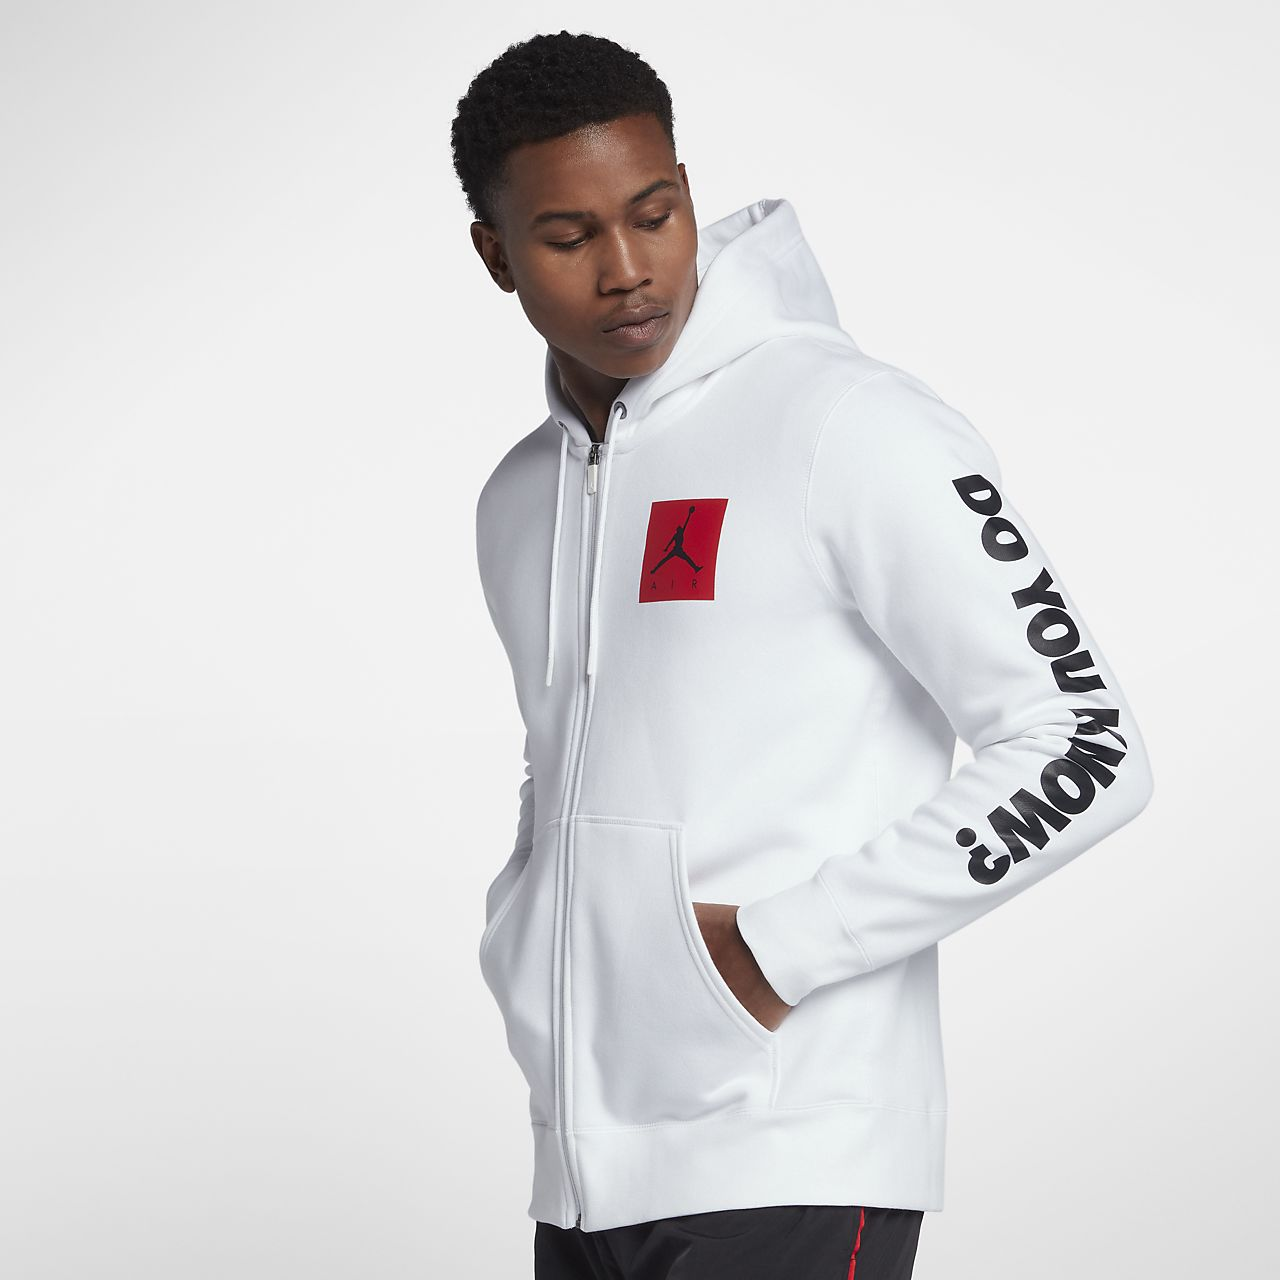 ... Jordan Sportswear AJ 3 Flight Men's Full-Zip Fleece Hoodie